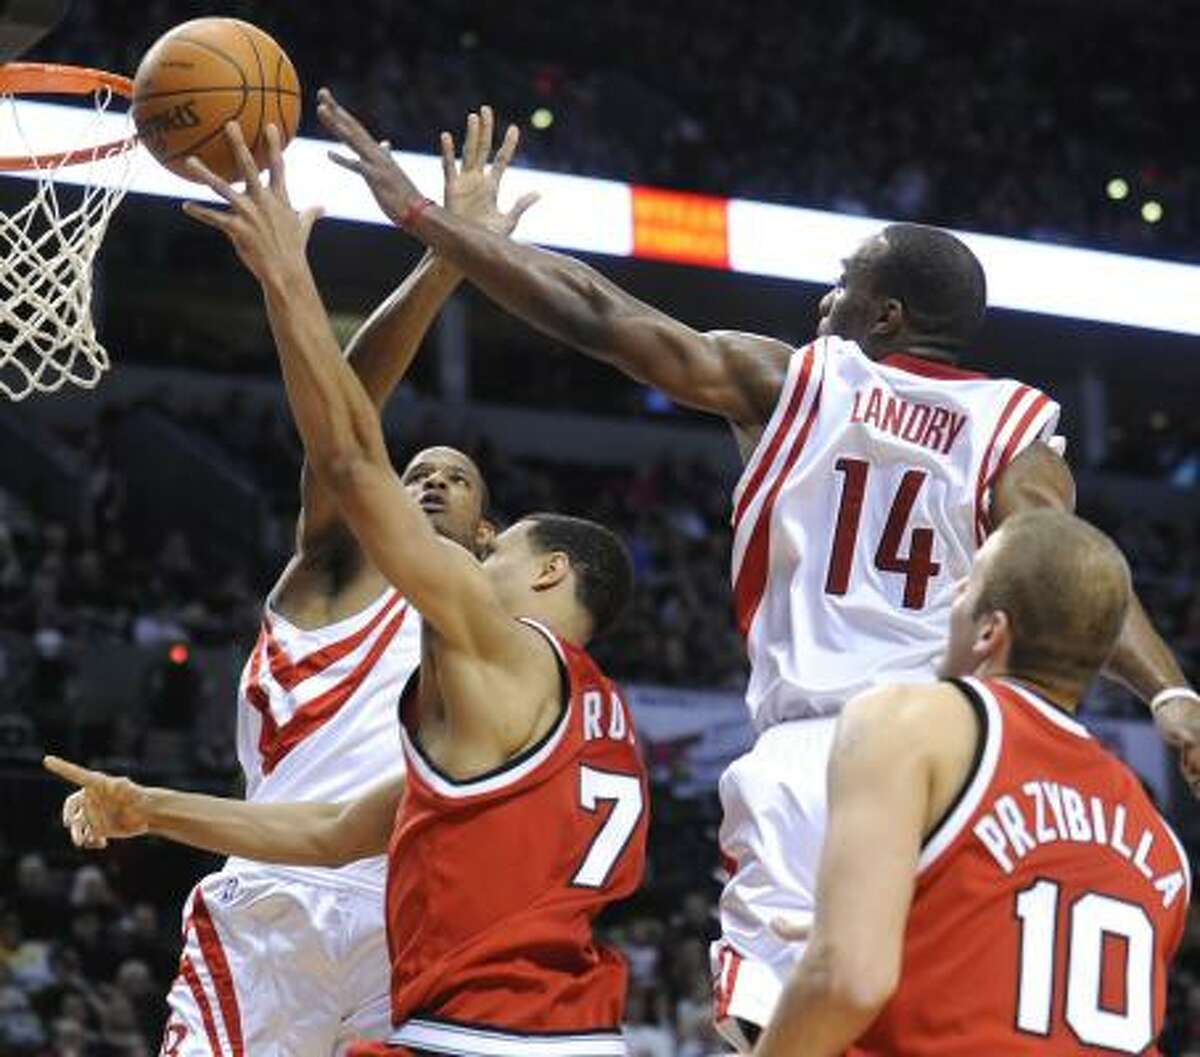 Trevor Ariza, left, and Carl Landry (14) defend a shot by Trail Blazers guard Brandon Roy (7).